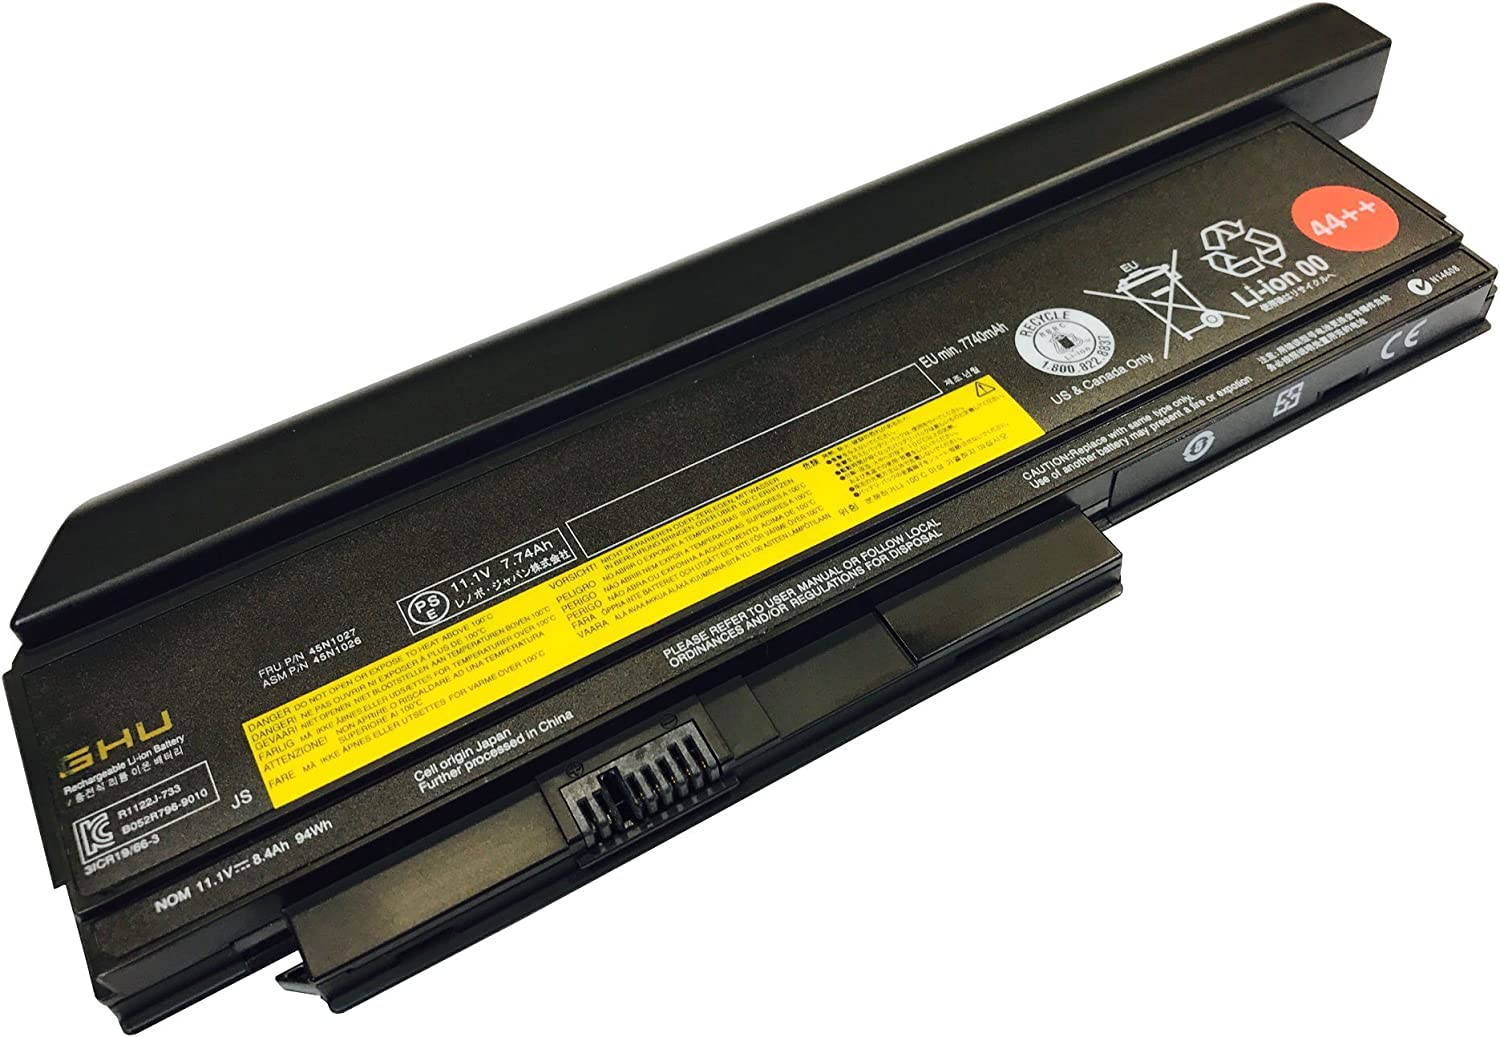 New GHU Battery 44 9-Cell High Capacity Replacement for 0a36307 0A36282 0A36283 0A36283 0a36307 Compatible for Lenovo X220 X220 X220i X230 Notebook